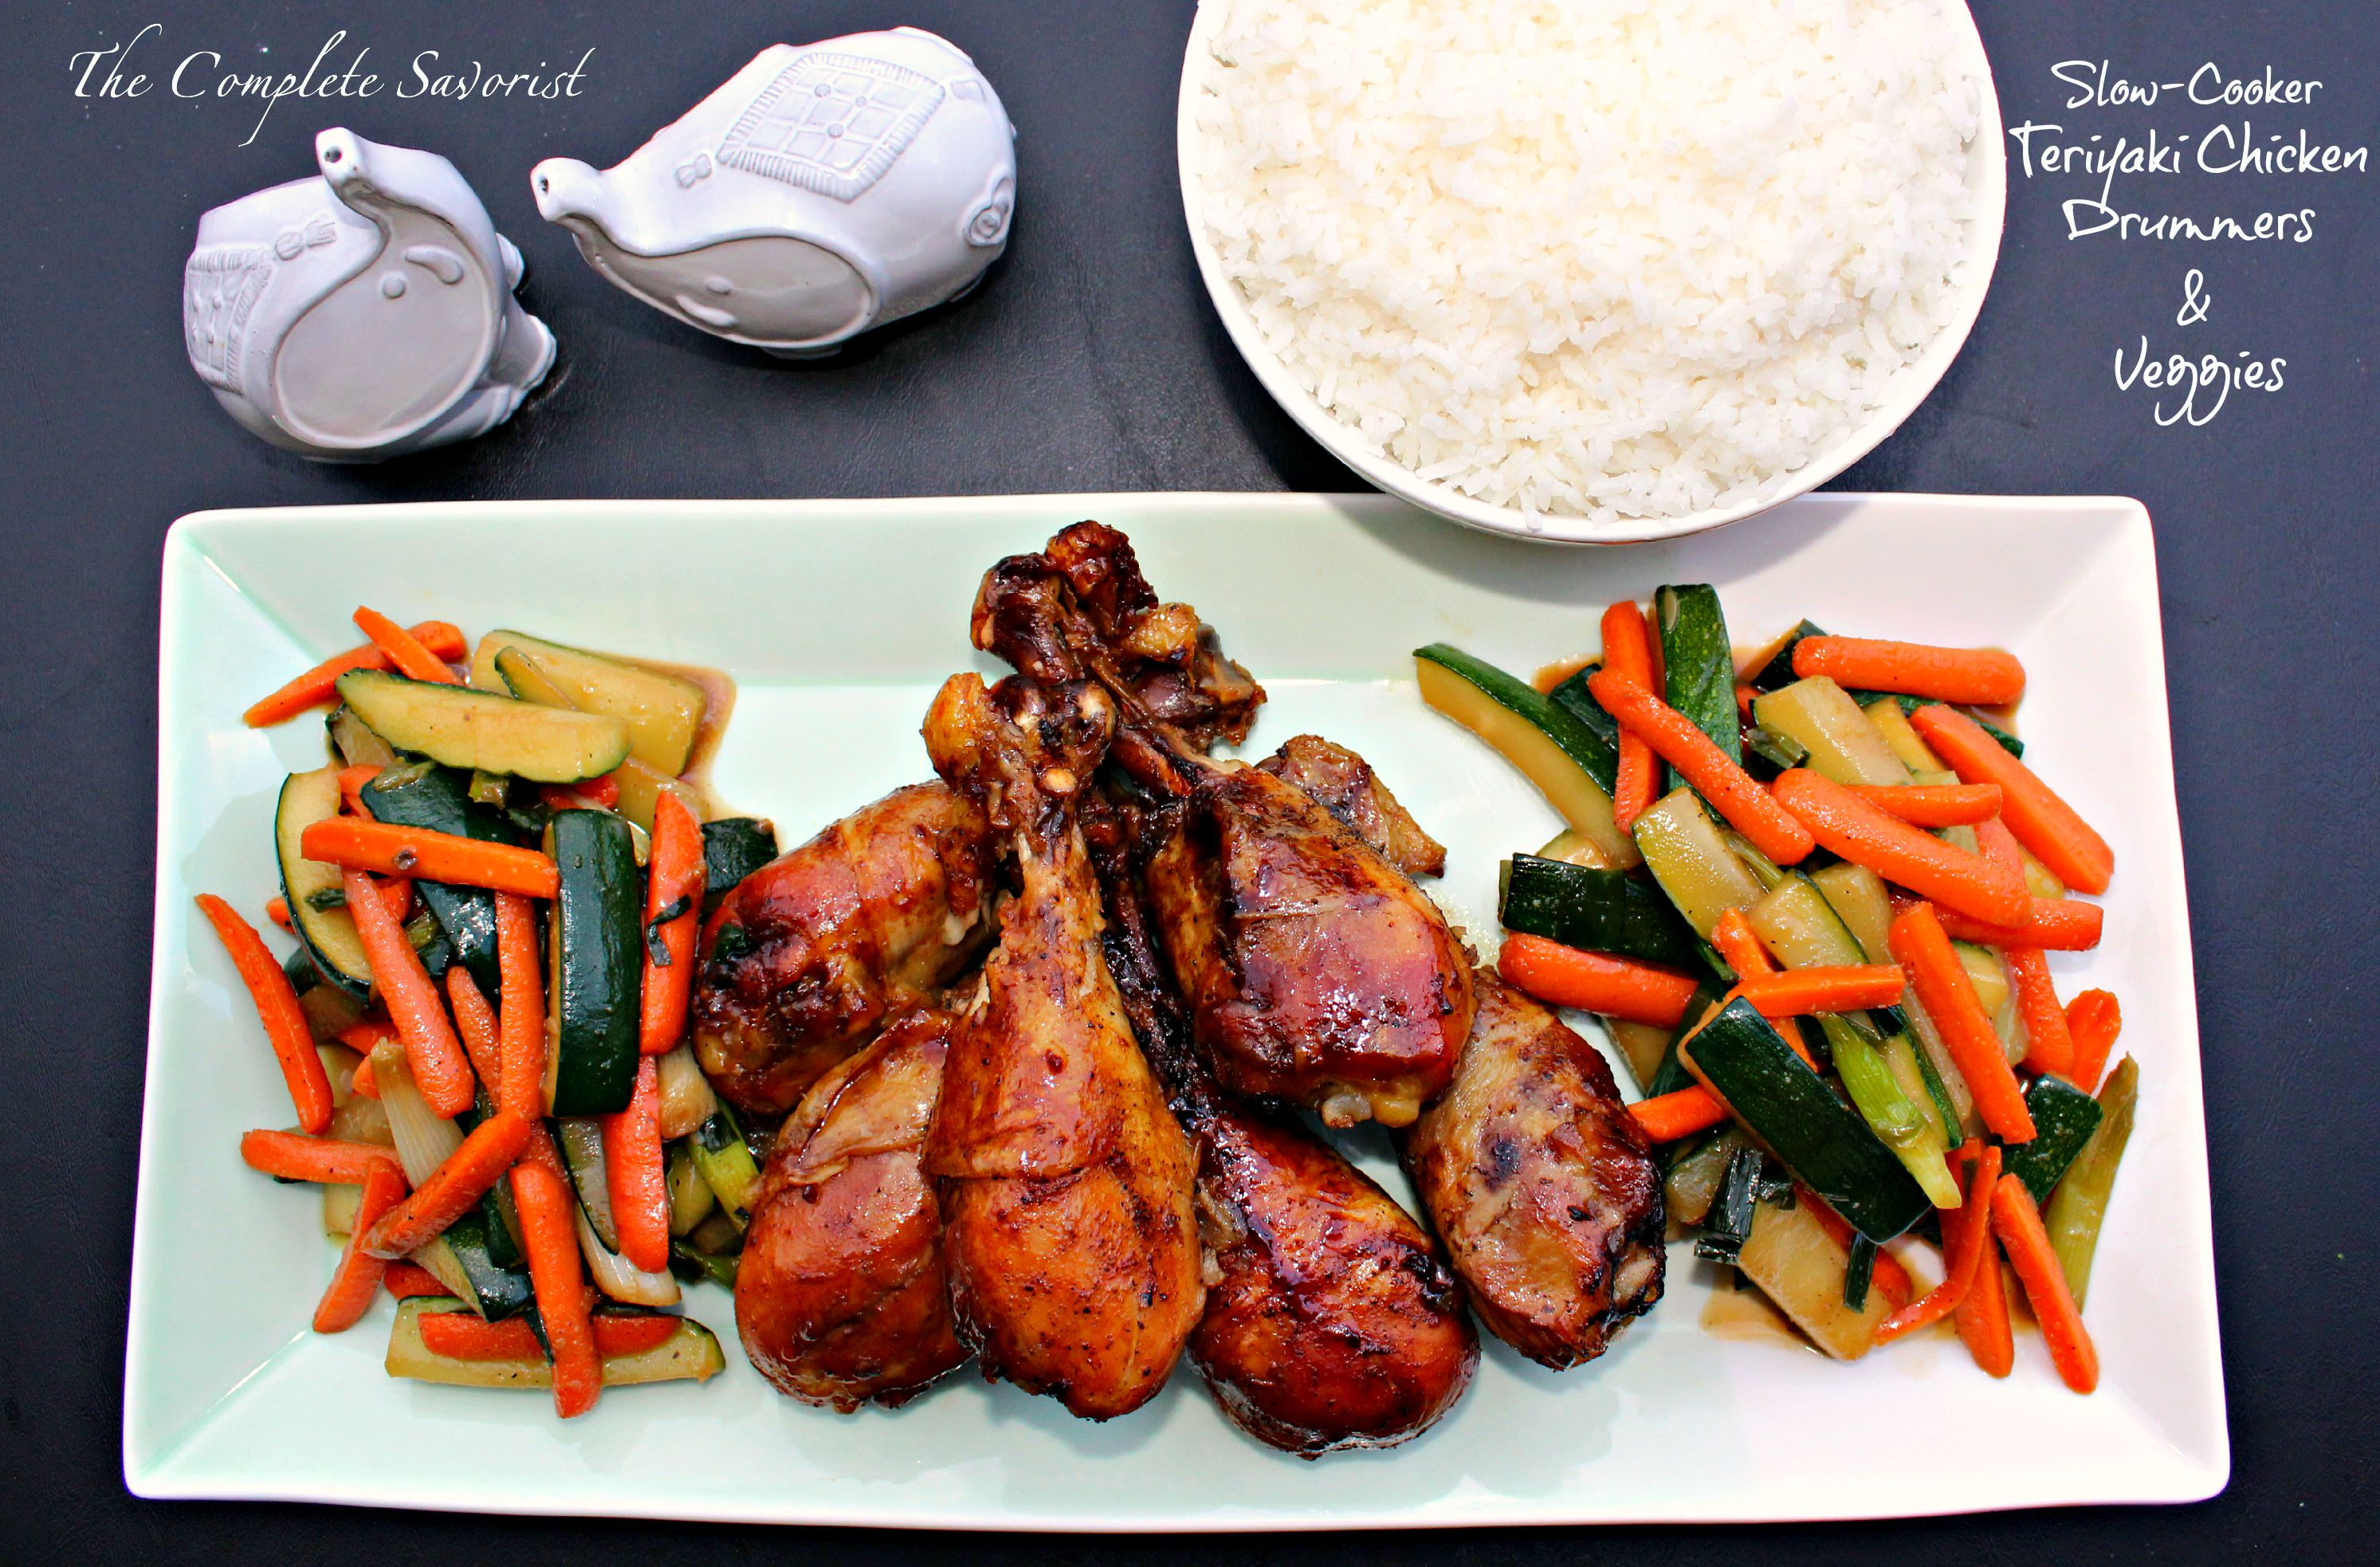 Slow cooker teriyaki chicken drummers and veggies the complete slow cooker teriyaki chicken drummers and vegetables the complete savorist forumfinder Choice Image